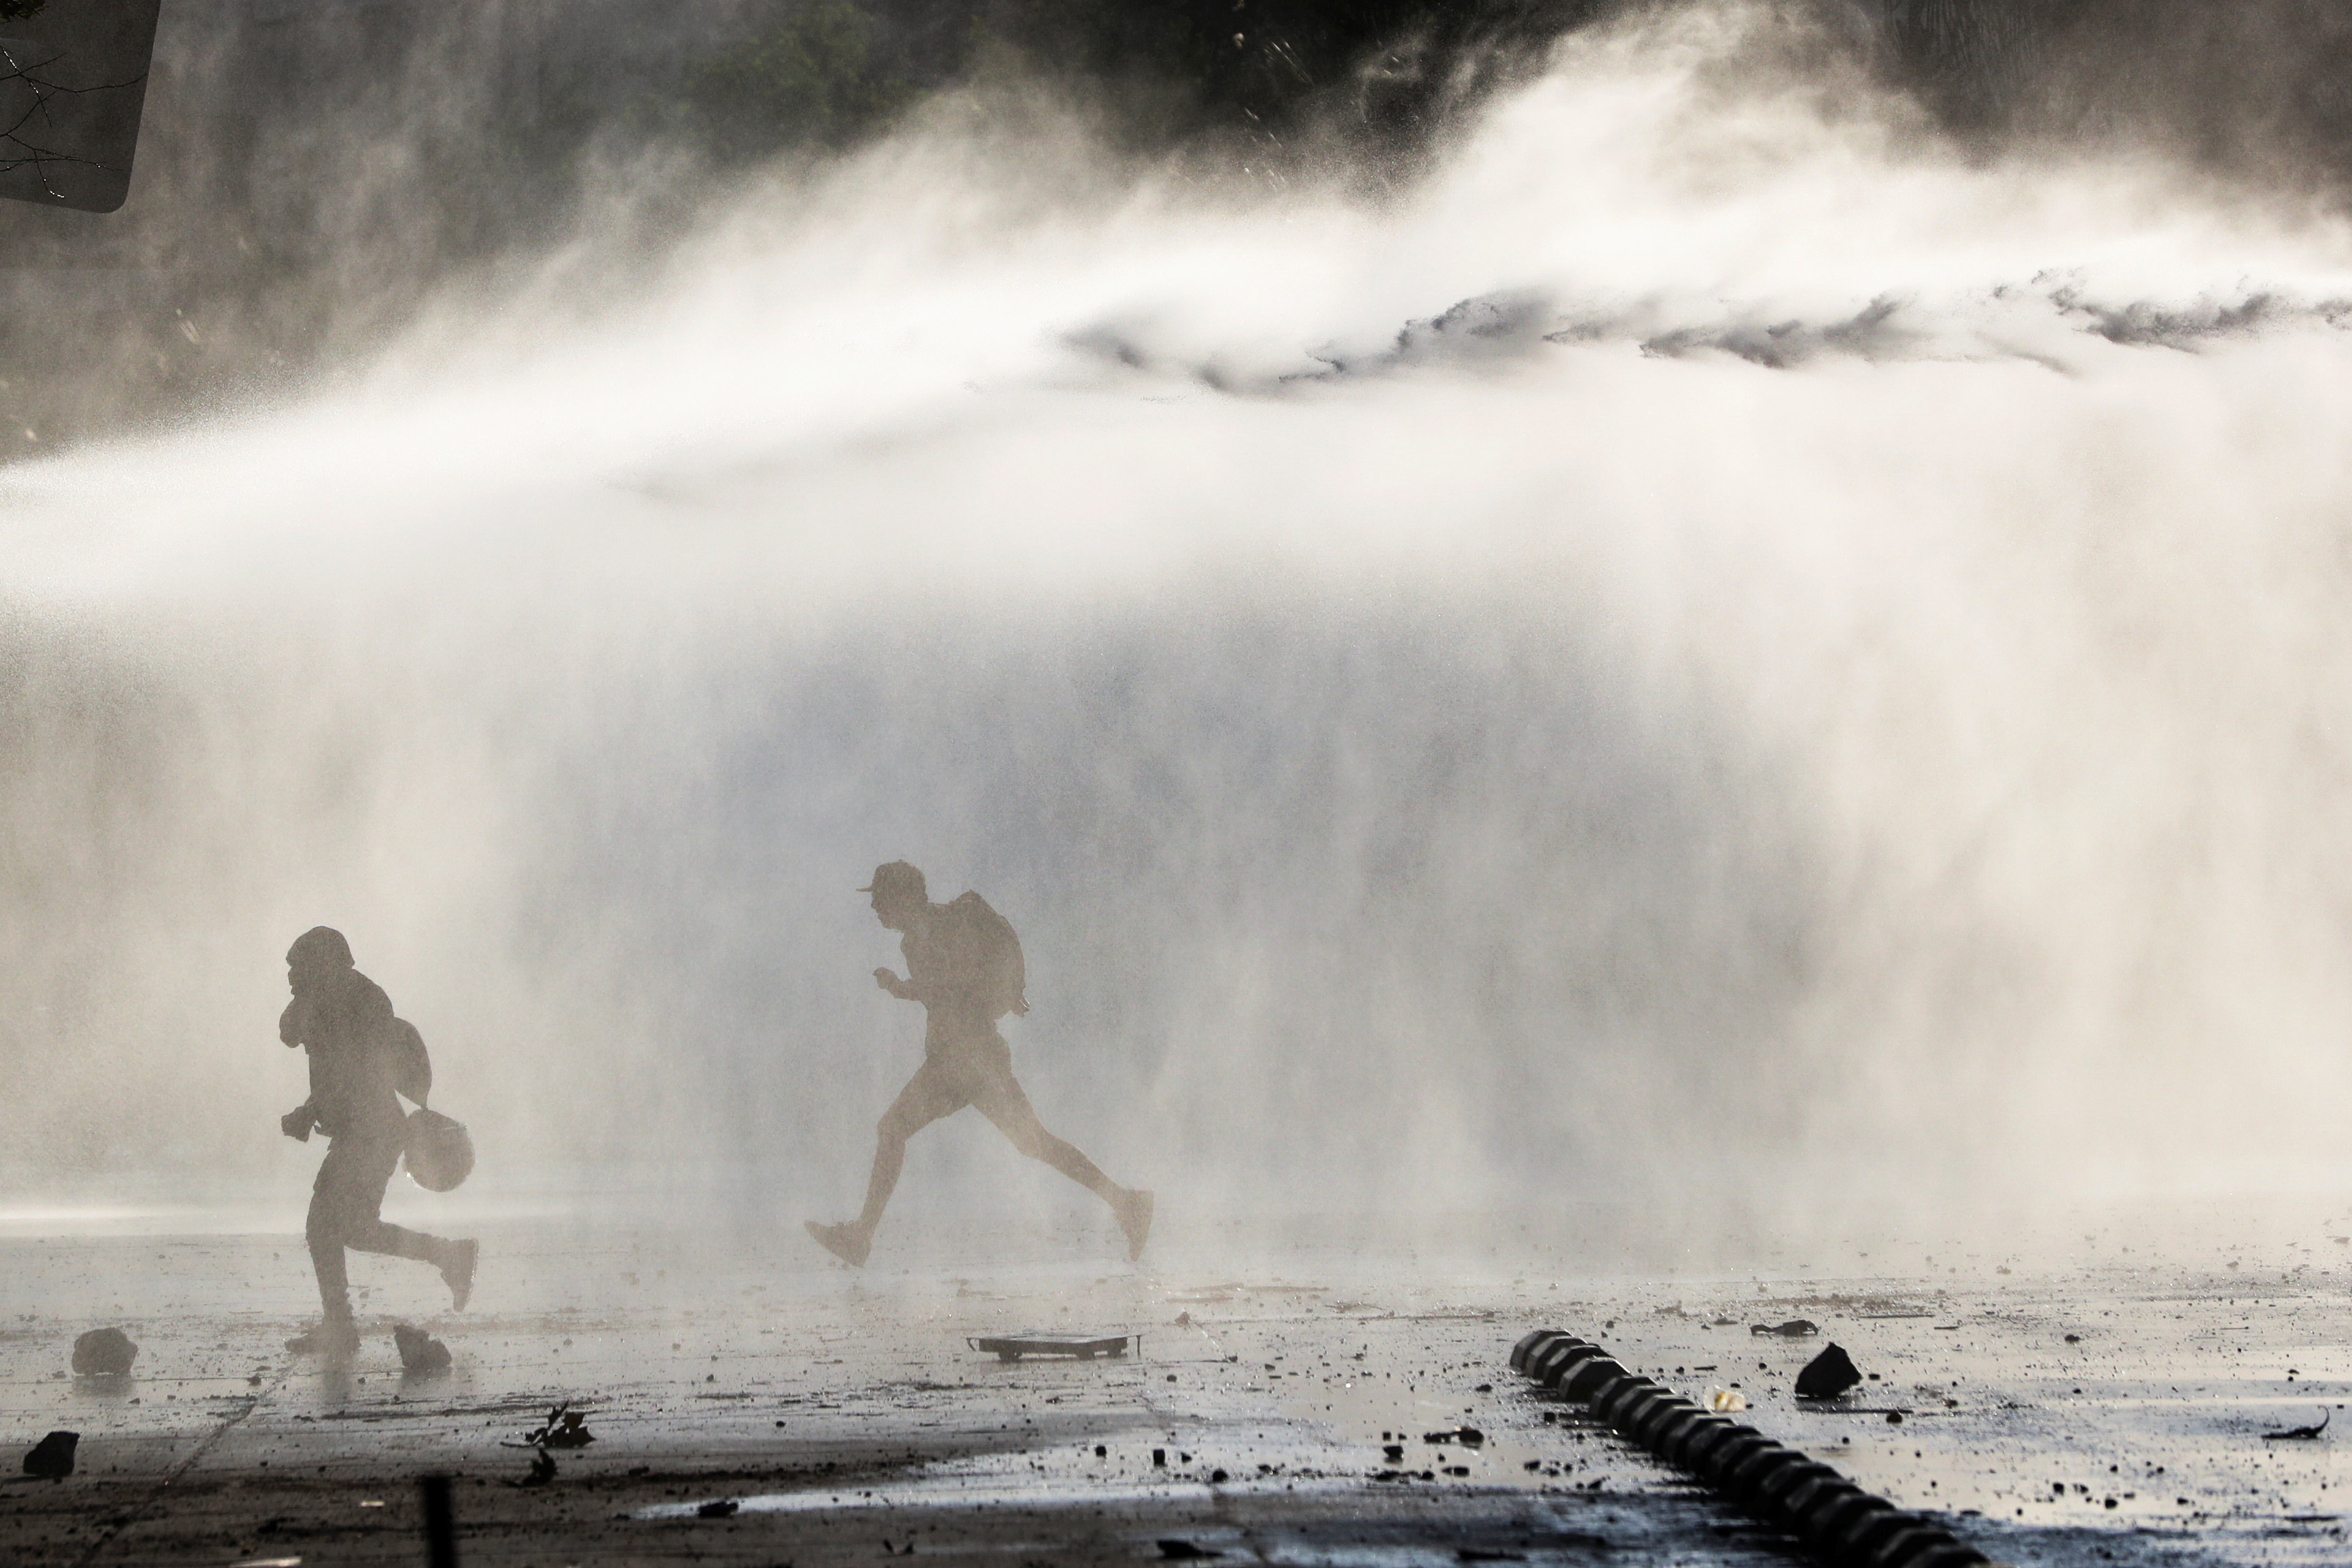 DATE IMPORRTED:October 19, 2019Demonstrators run from the police water cannon during a protest against the increase in subway ticket prices in Santiago, Chile, October 19, 2019